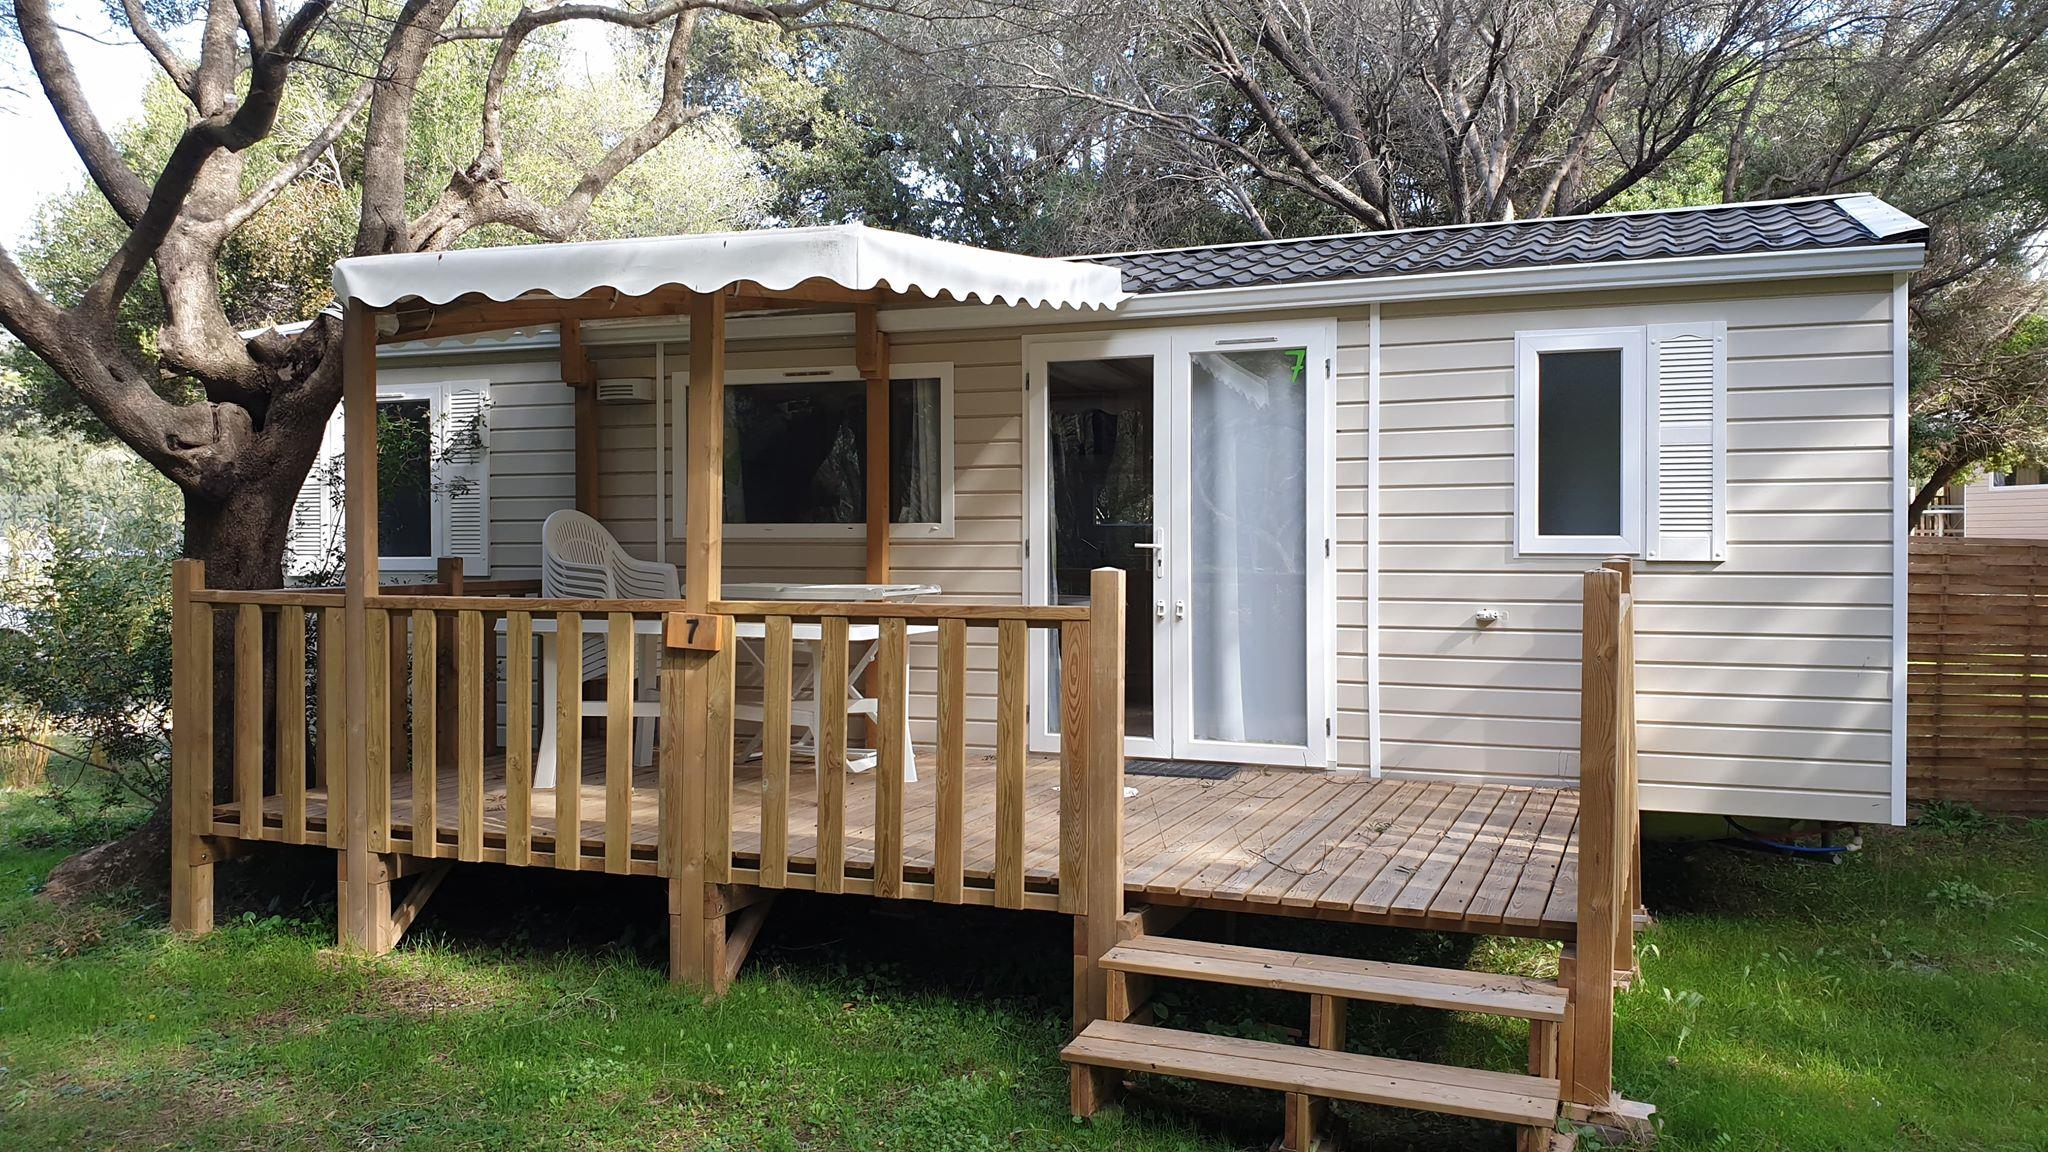 Camping-monte-ortu-new-mobile-home